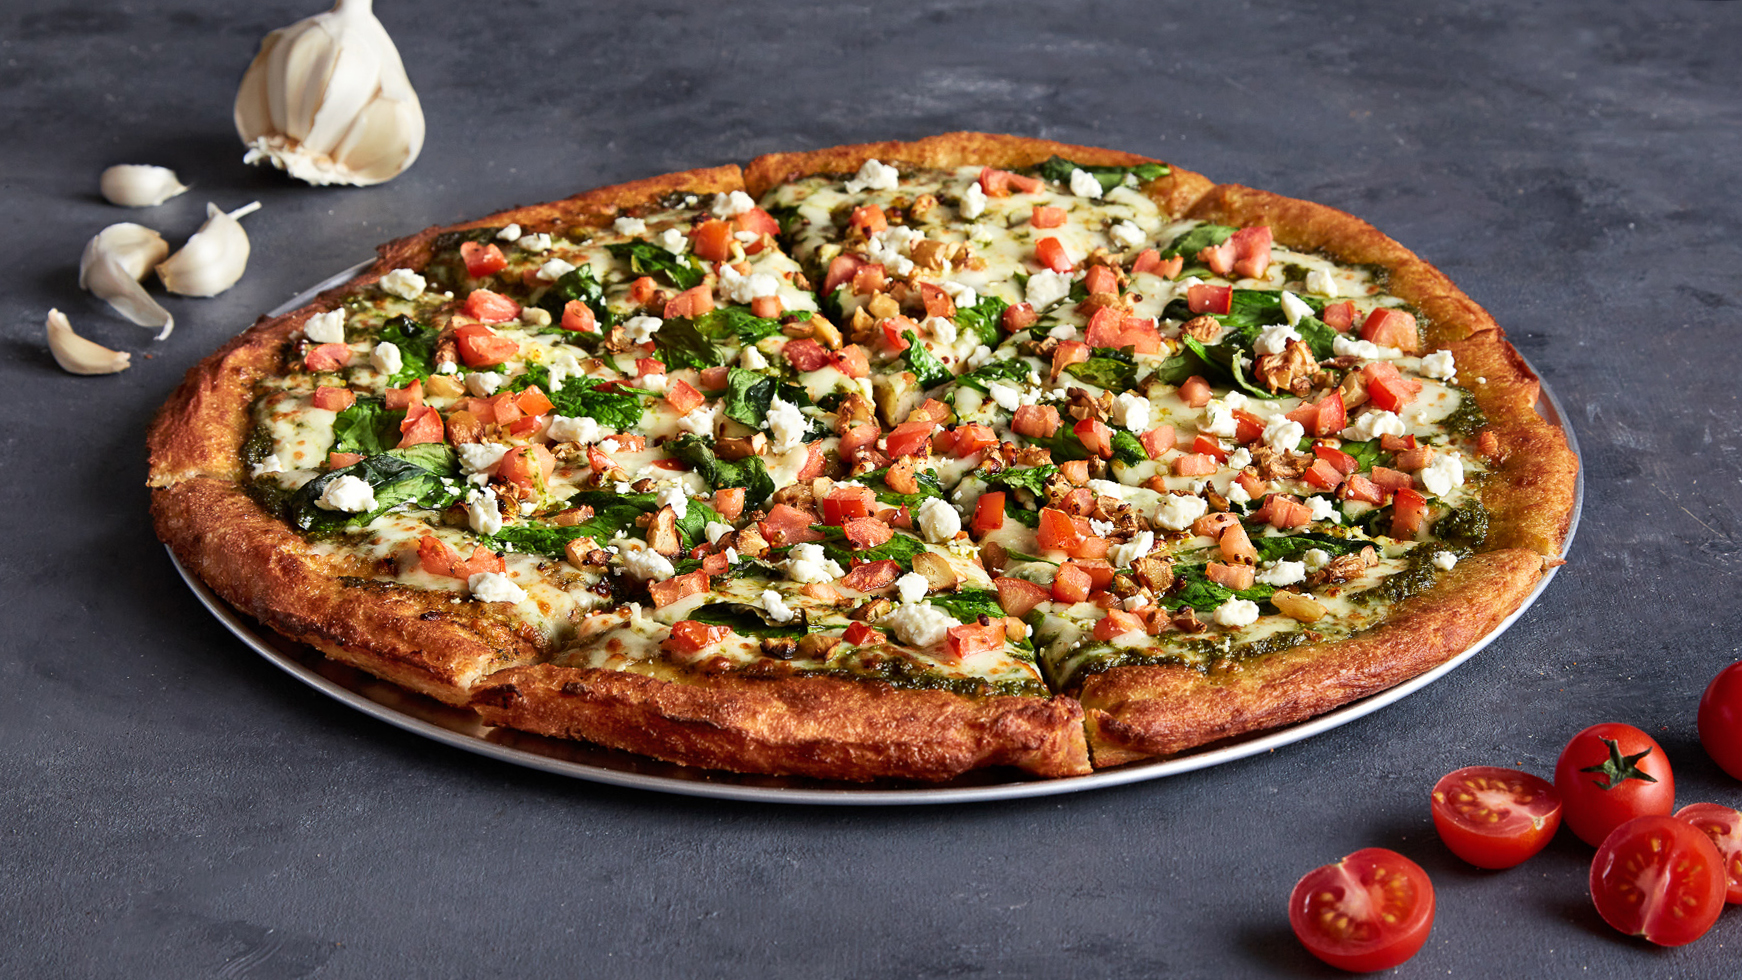 Oath's build your own pizza on a new! large thick crust.